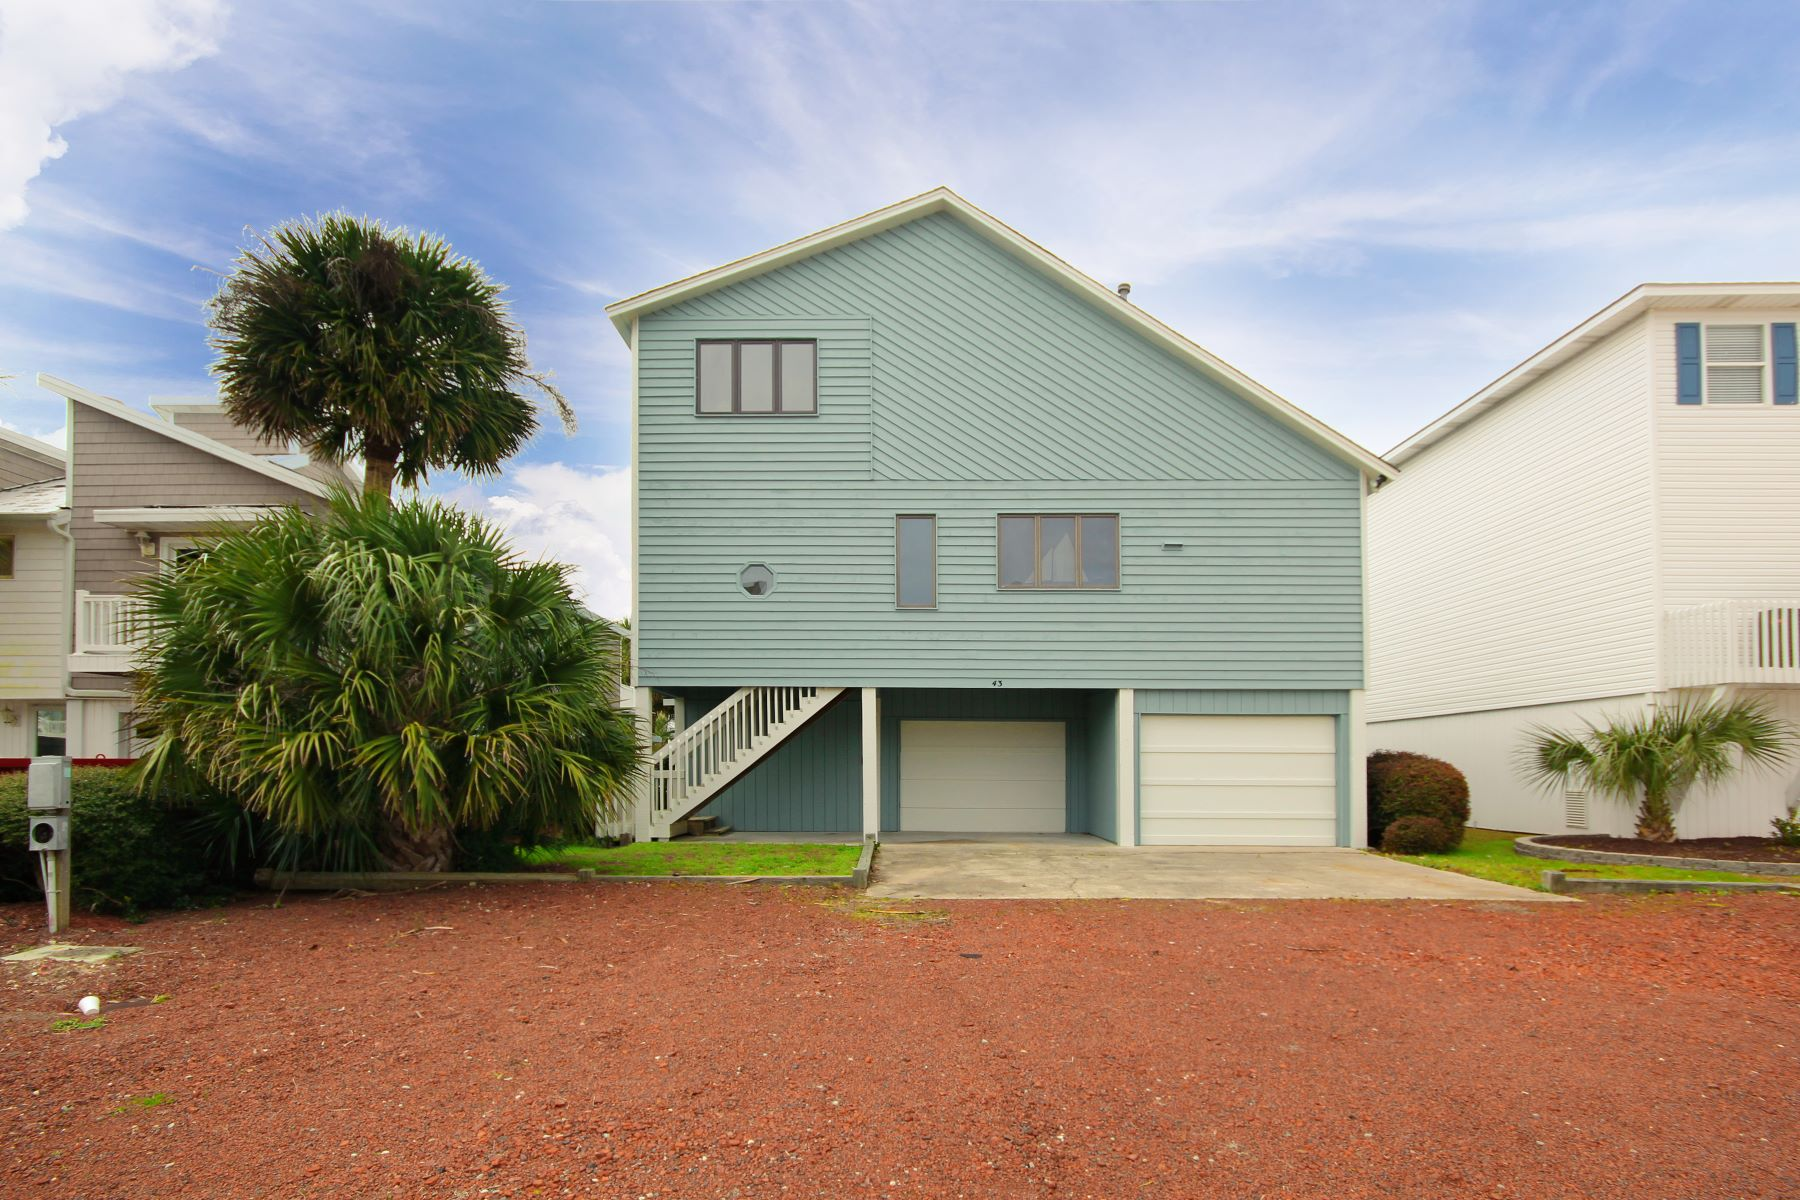 Single Family Homes for Sale at Airy, Bright, and Inviting! 43 Pender Street Ocean Isle Beach, North Carolina 28469 United States